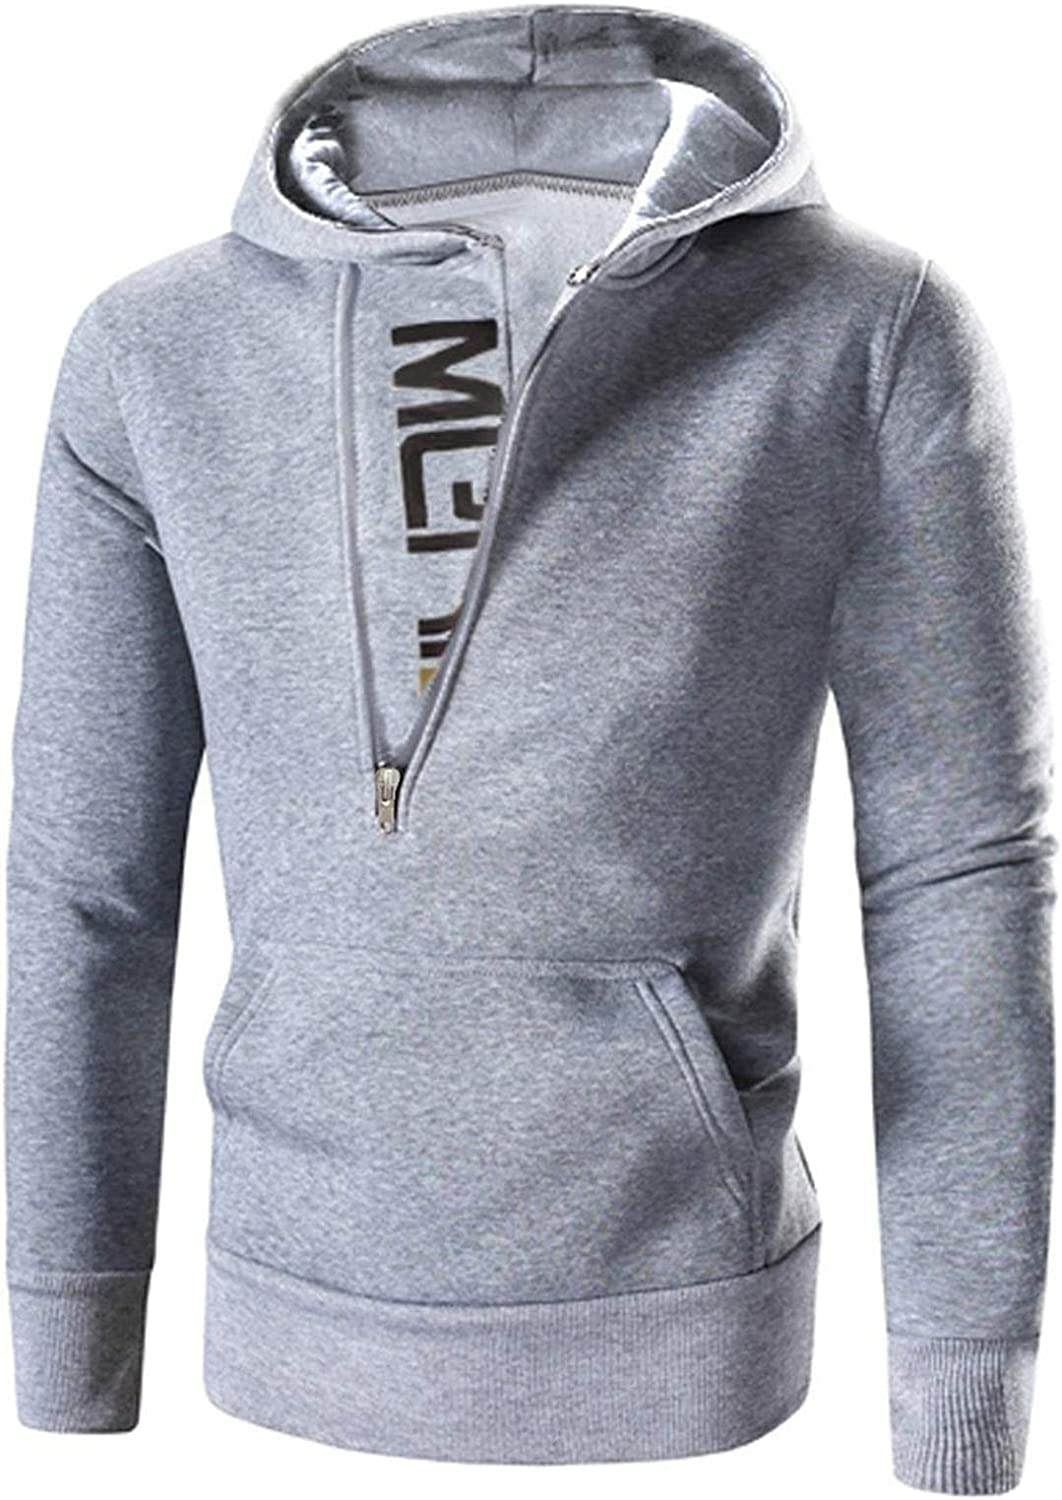 HONGJ Hoodies for Mens, Diagonal Zipper Collar Letter Print Hooded Sweatshirts Patchwork Workout Slim Fit Pullover